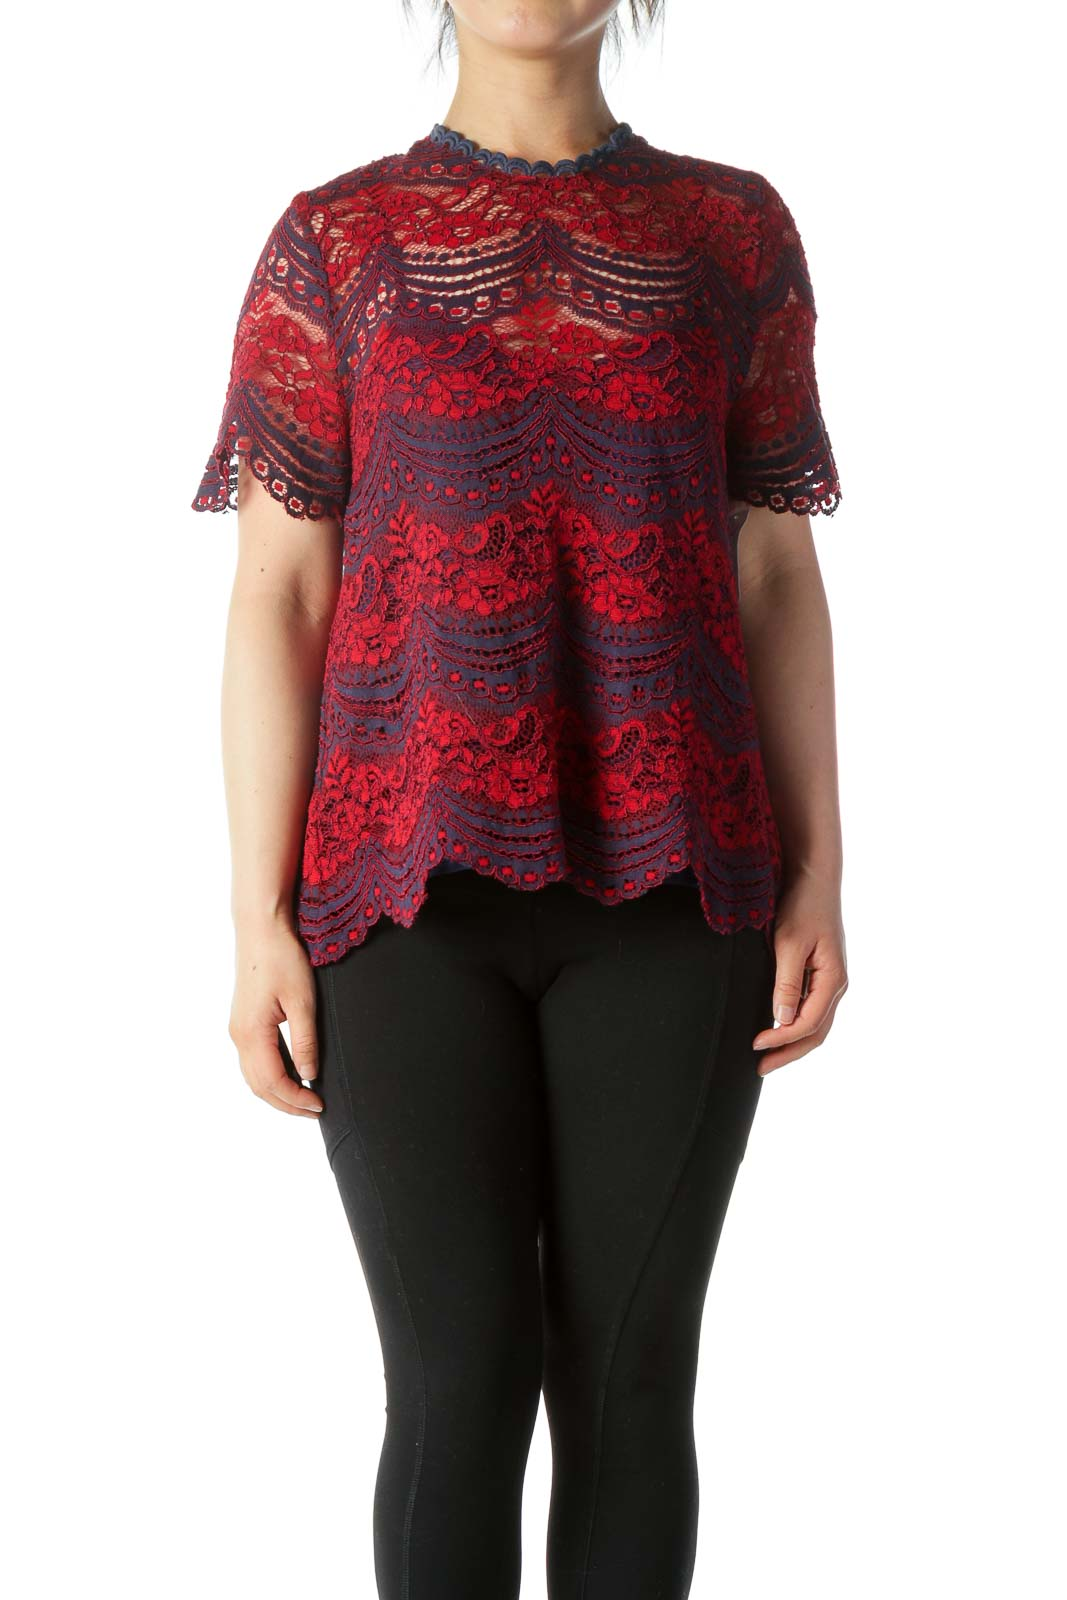 Red & Blue Lace Blouse w/ Back Lace-Up and Built-in Camisole